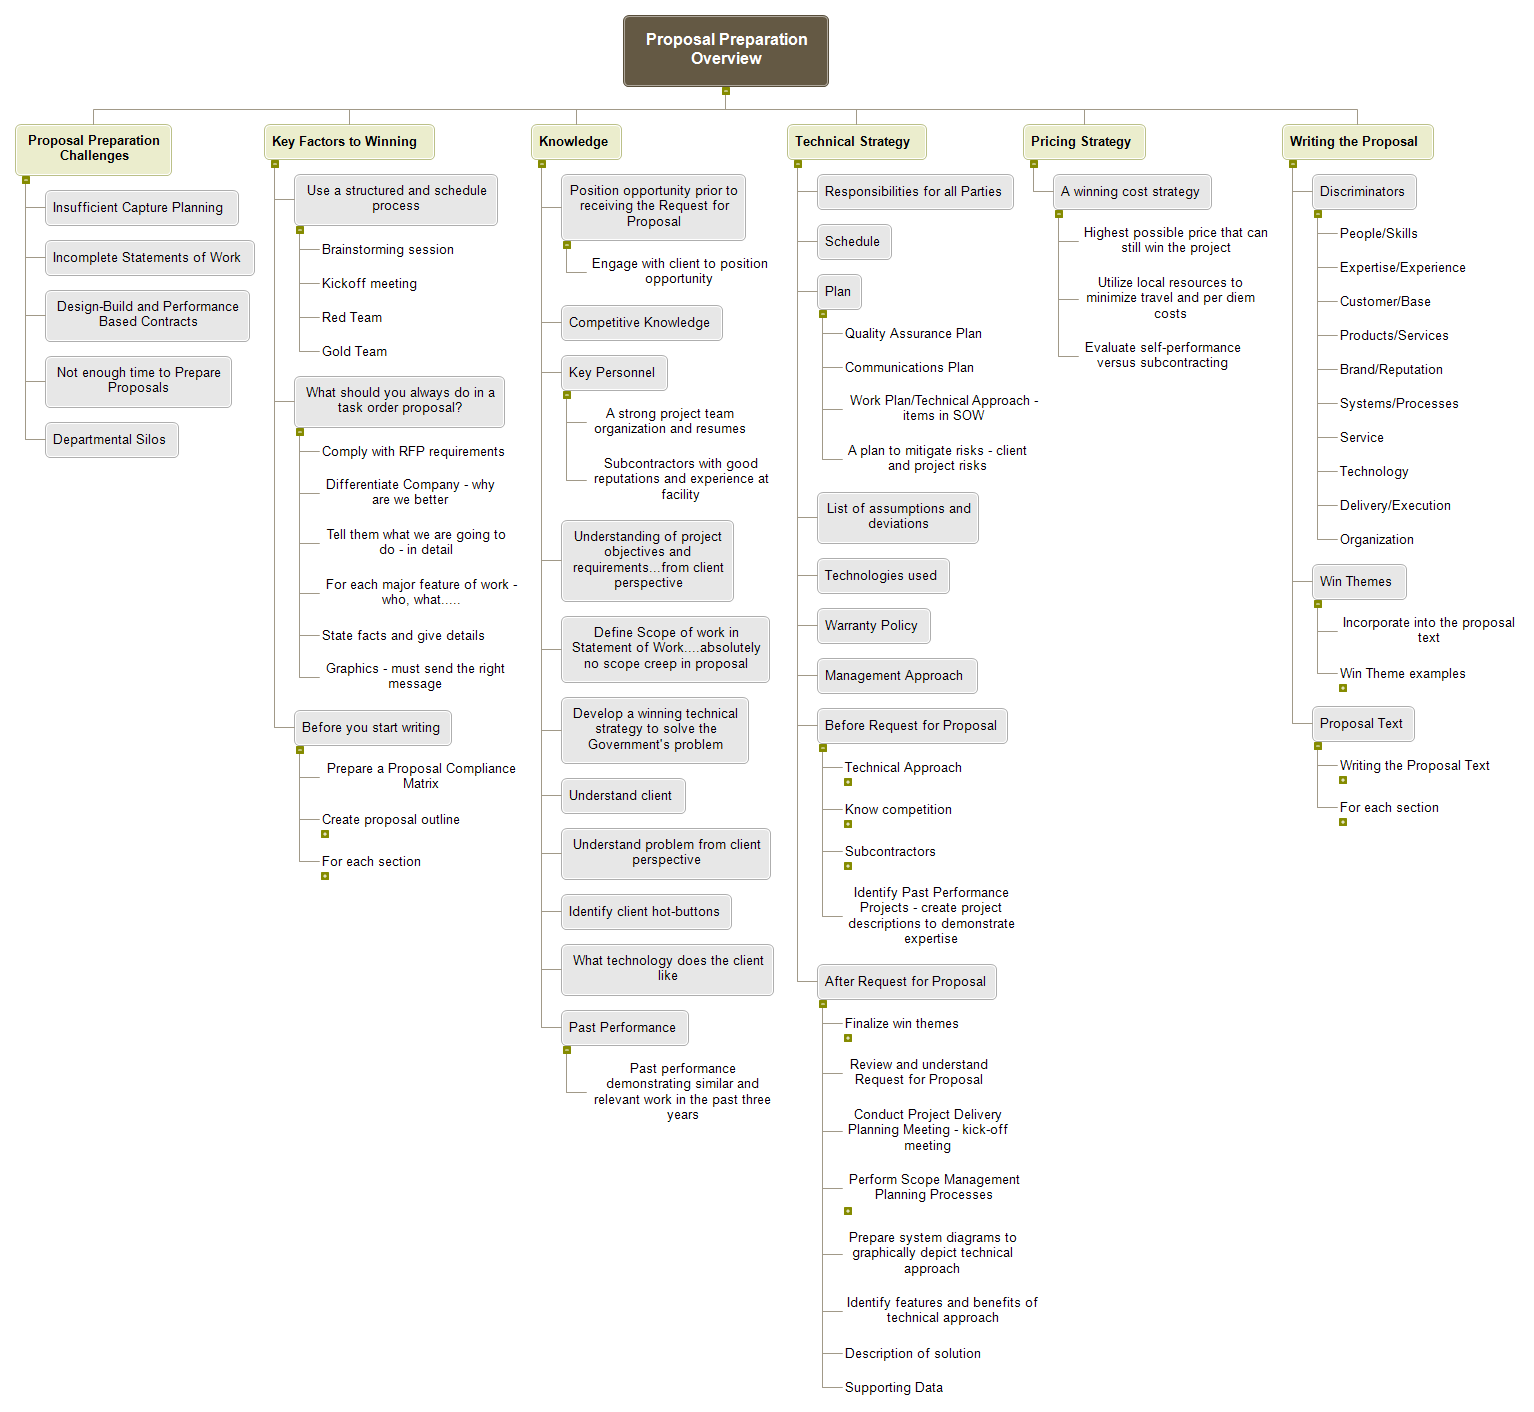 Proposal Preparation Map WBS